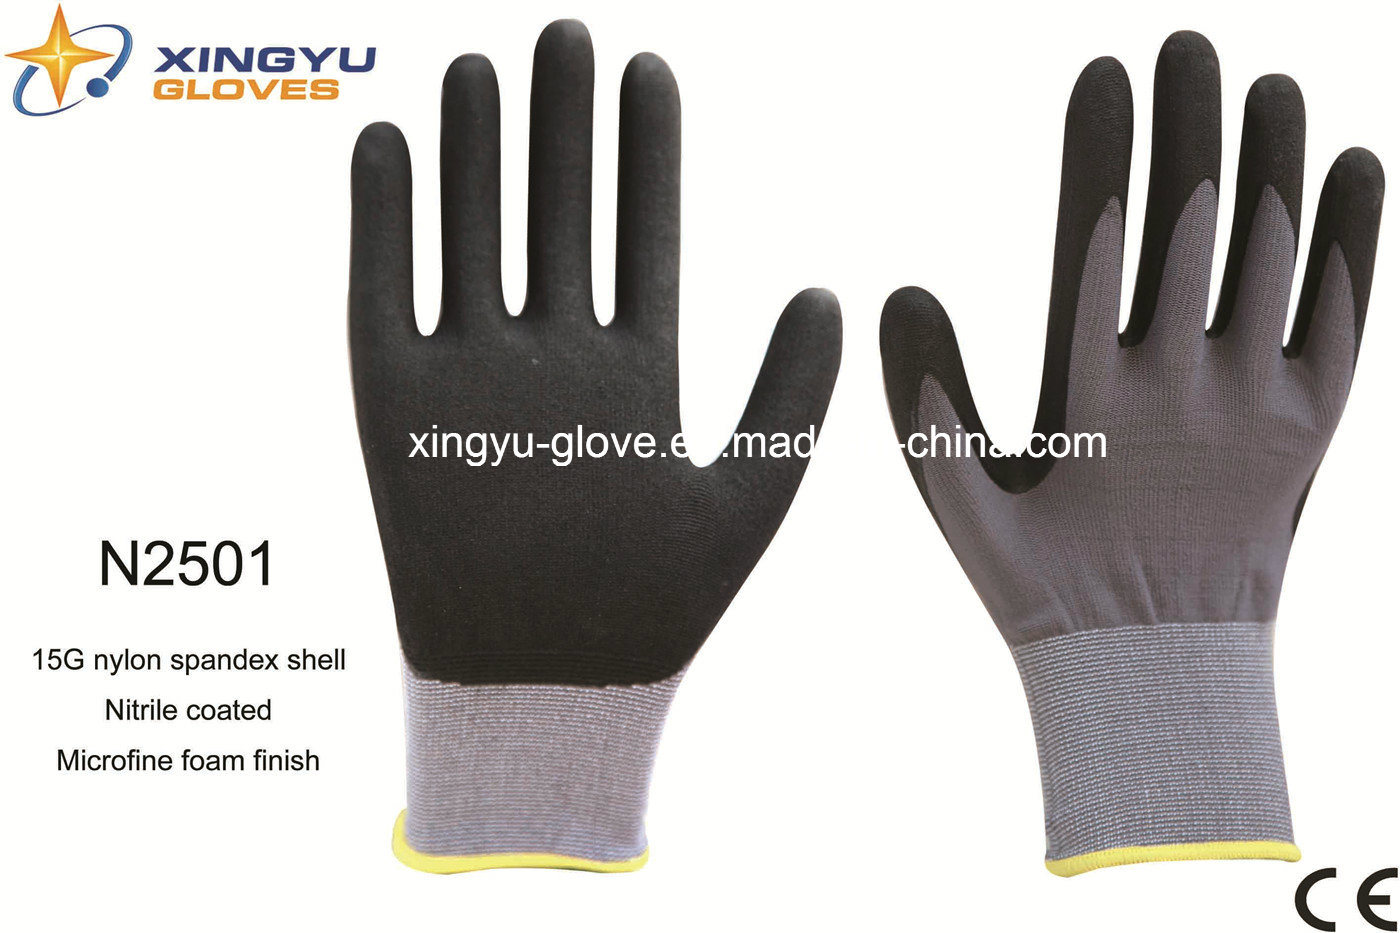 Nylon Spandex Shell Nitrile Coated Saftey Work Gloves (N2501)